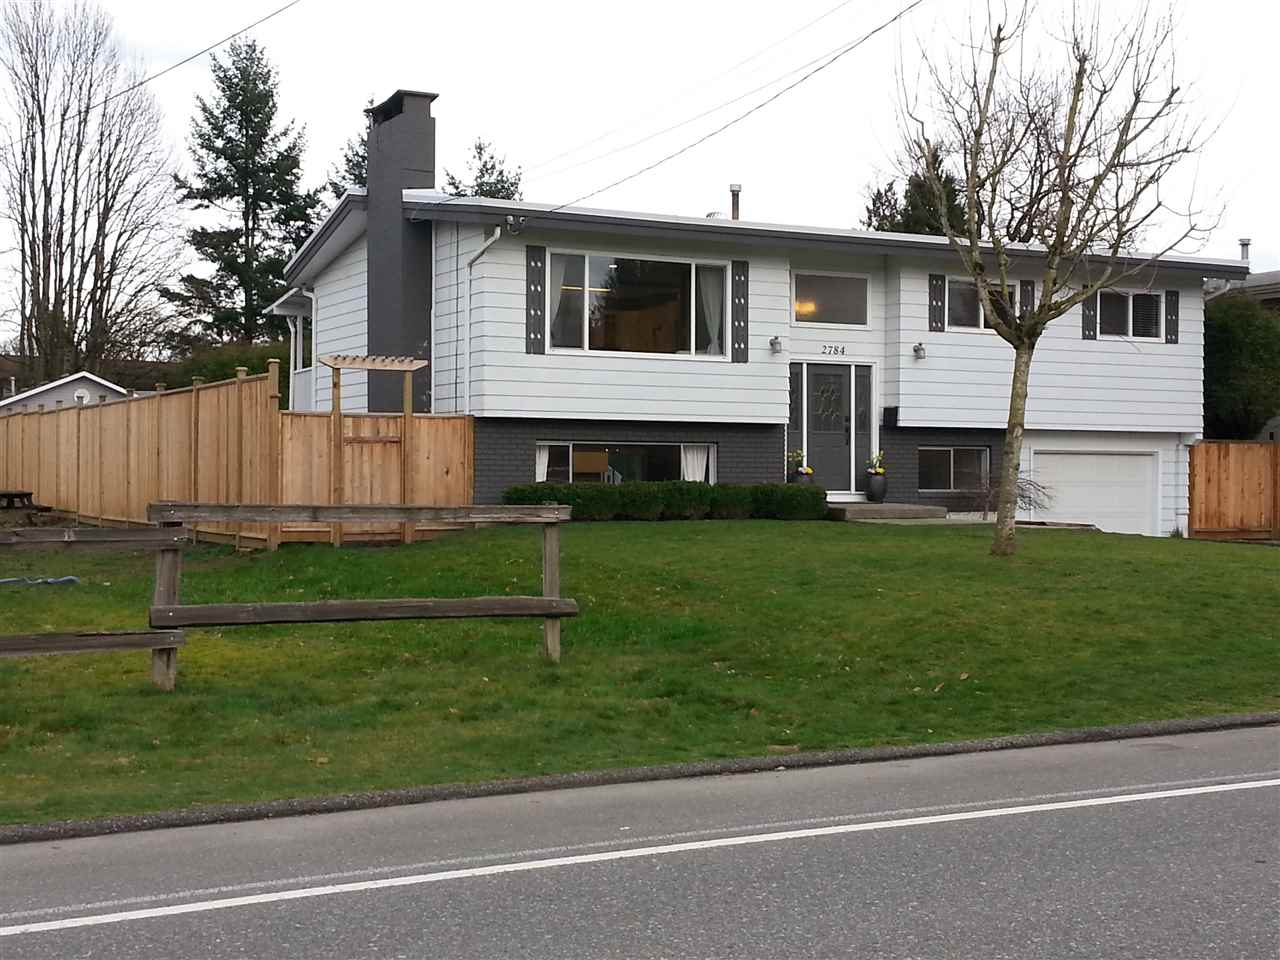 Main Photo: 2784 MOUNTVIEW Street in Abbotsford: Central Abbotsford House for sale : MLS® # R2041705